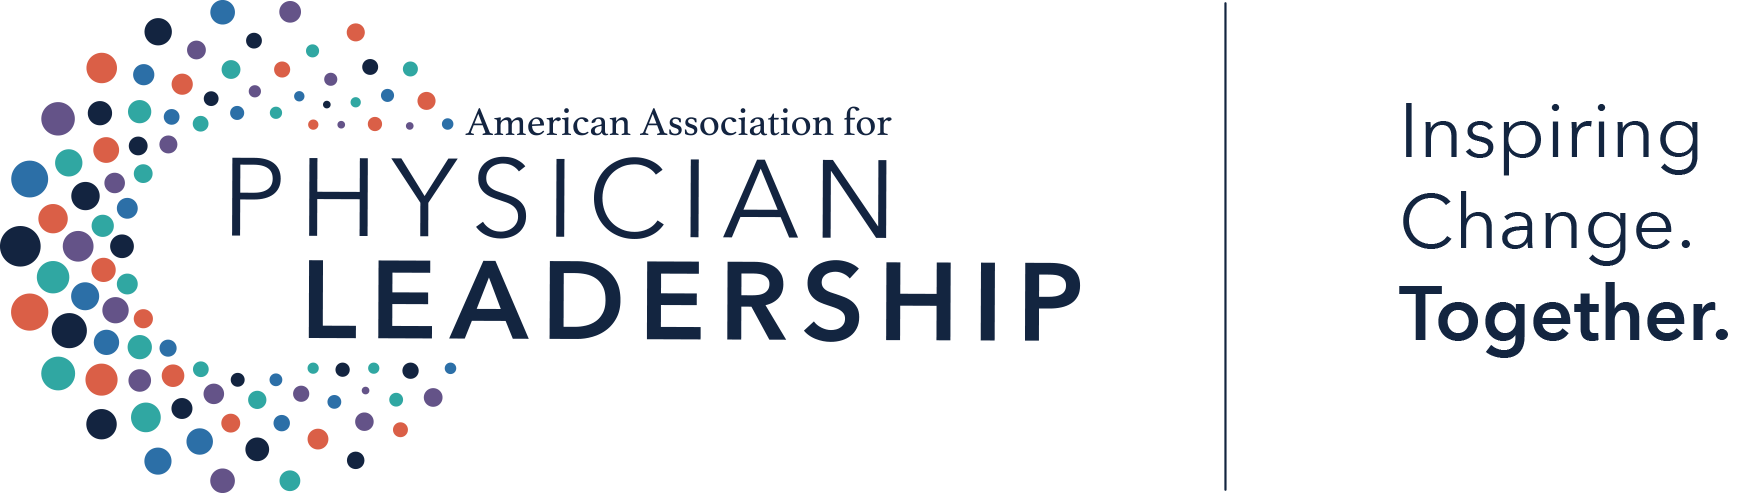 3 MEMBERS VOTED INTO ASSOCIATION LEADERSHIP